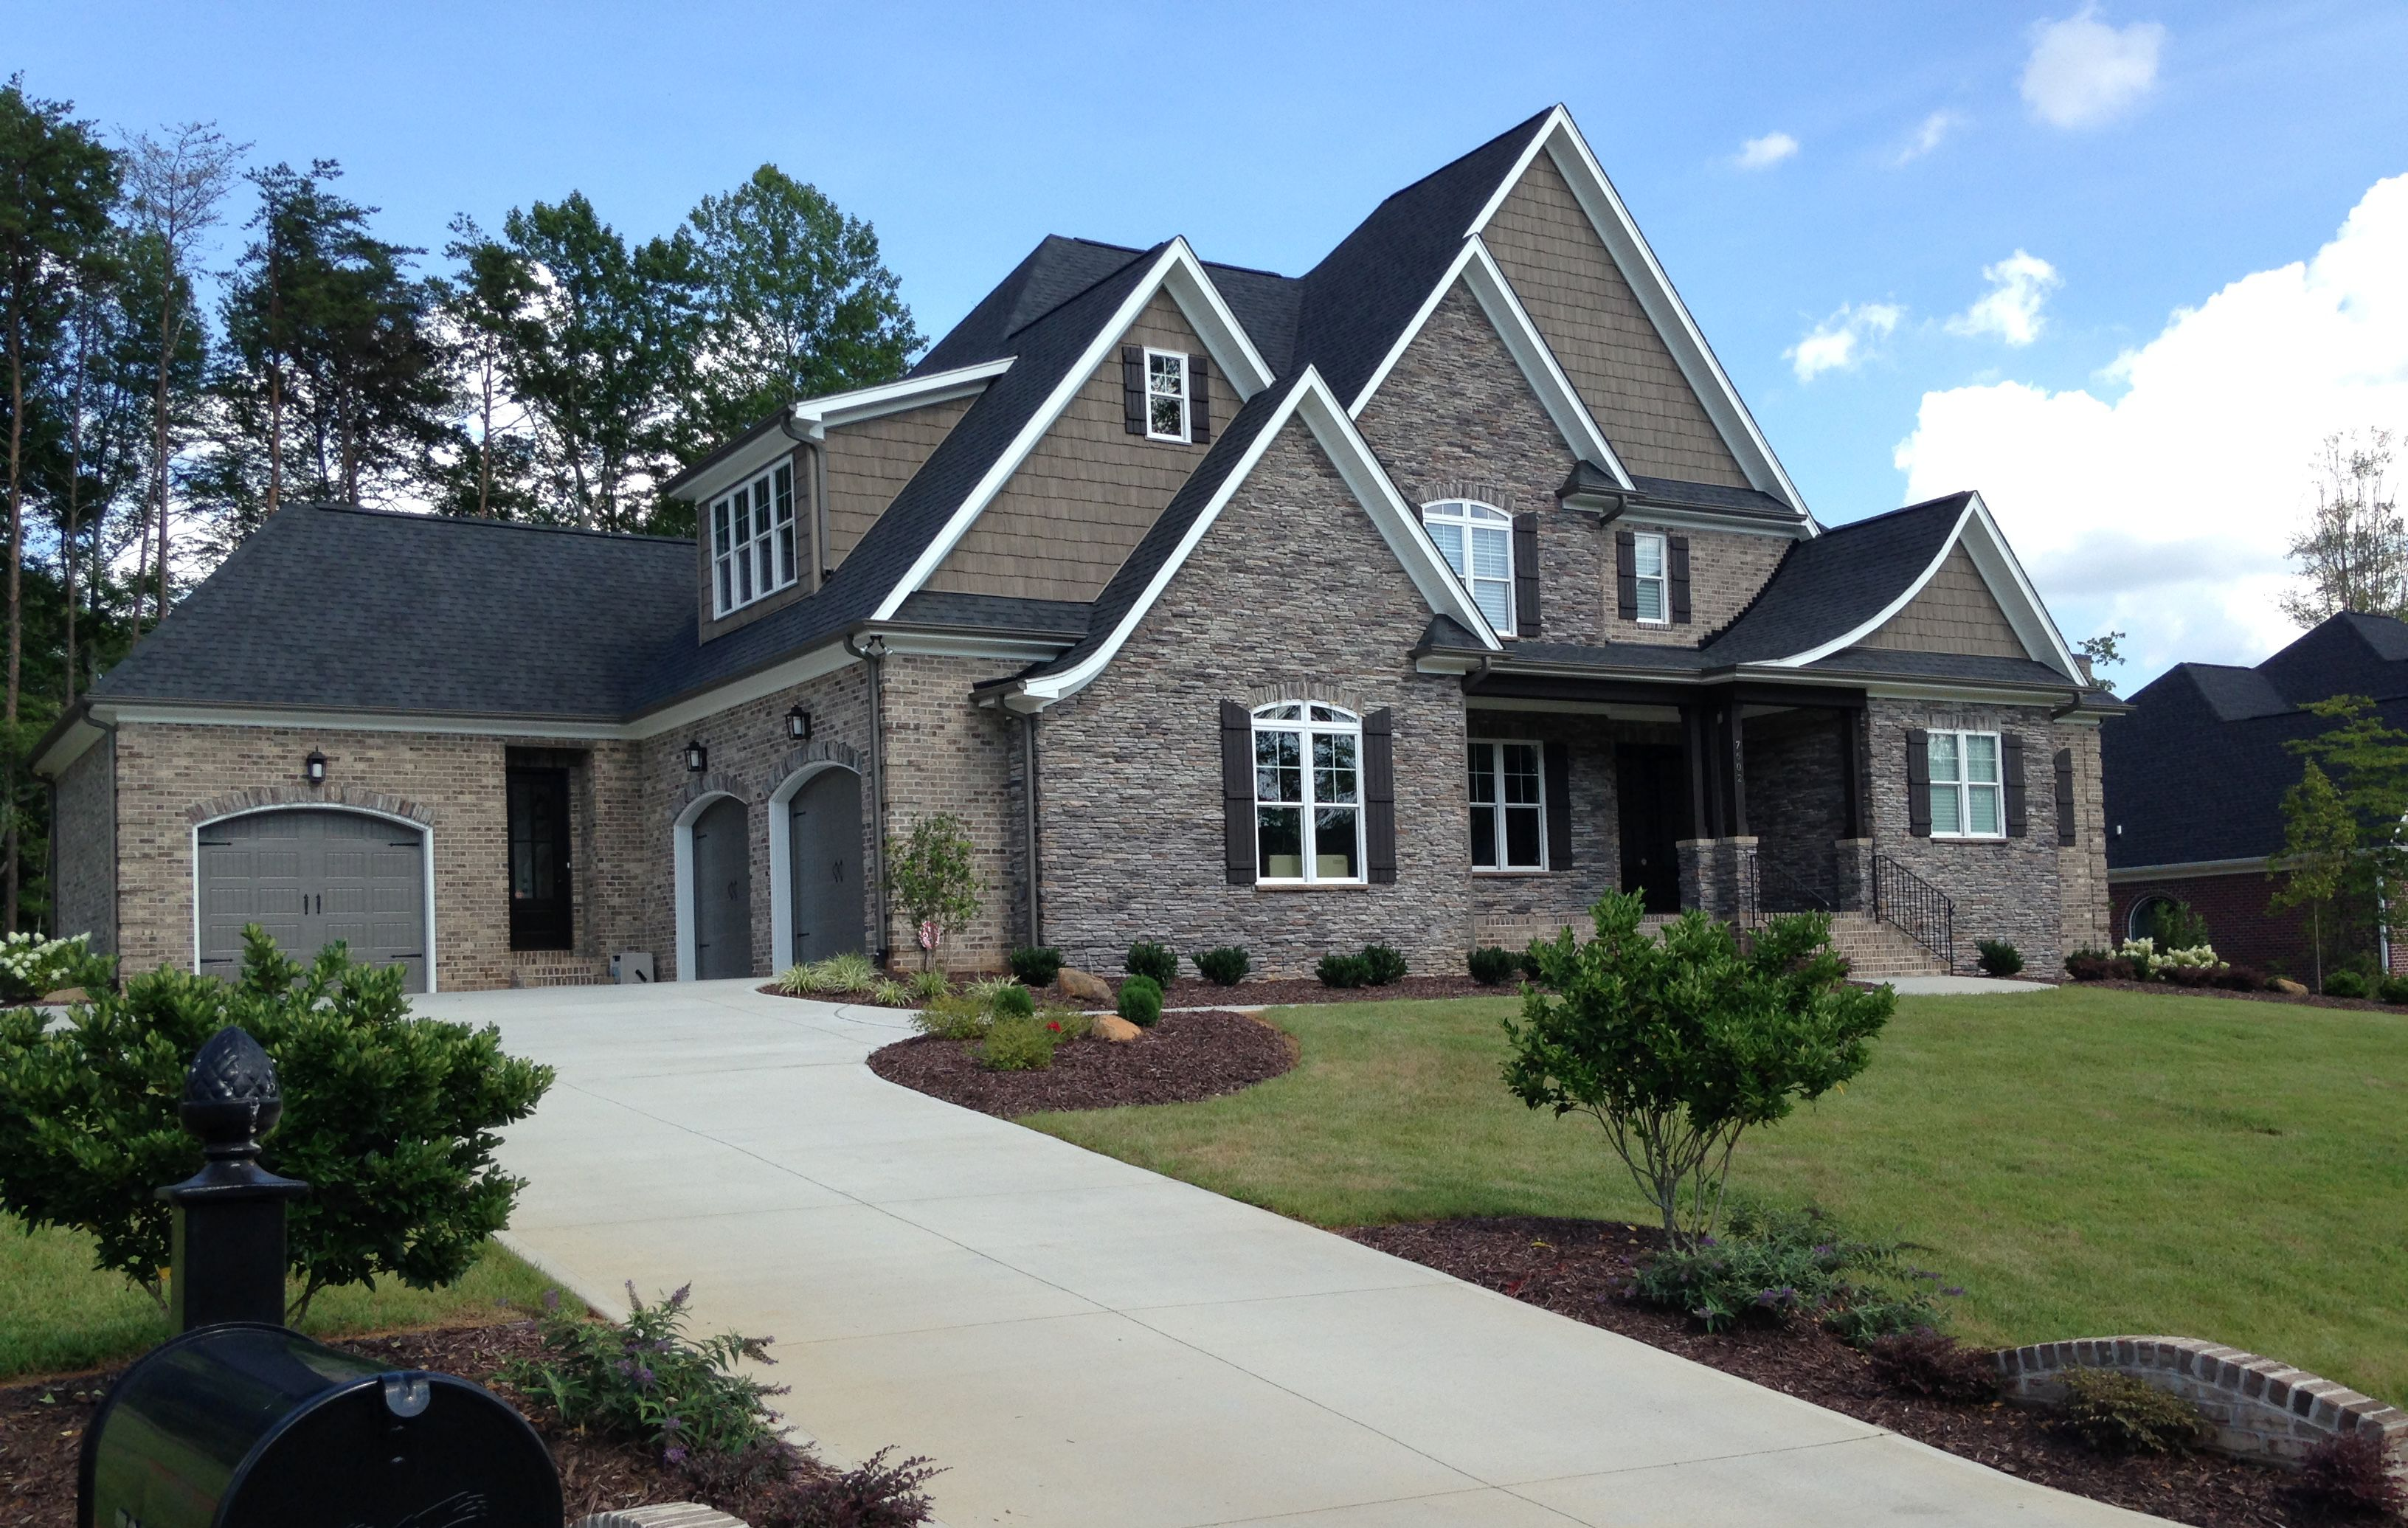 Exterior Design Scheme An Overall Cool Taupe Effect Is Created On This Exterior Using A T Exterior Brick Shutters Exterior Exterior House Colors Combinations